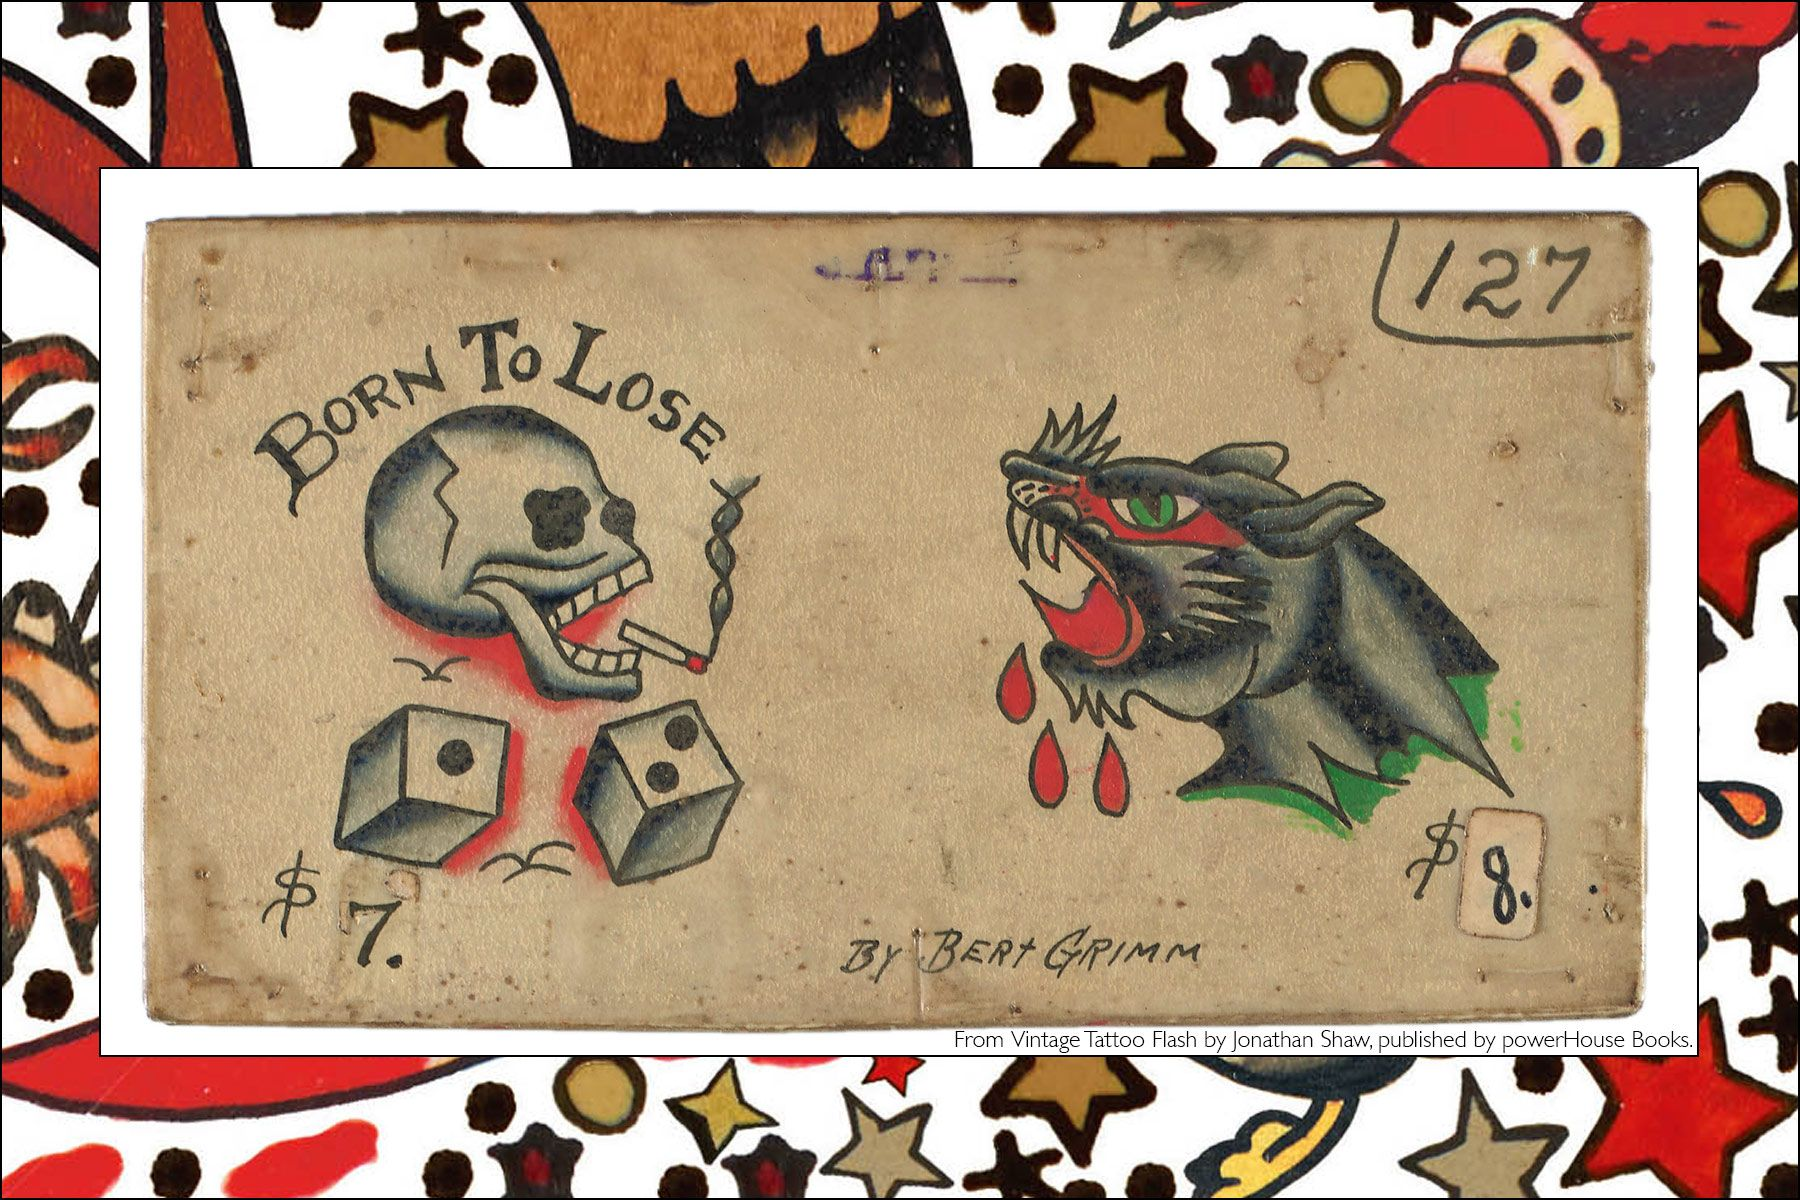 Old school tattoo flash, from the newly released publication, Vintage Tattoo Flash by Jonathan Shaw, from Powerhouse Books. Ponyboy magazine NY.